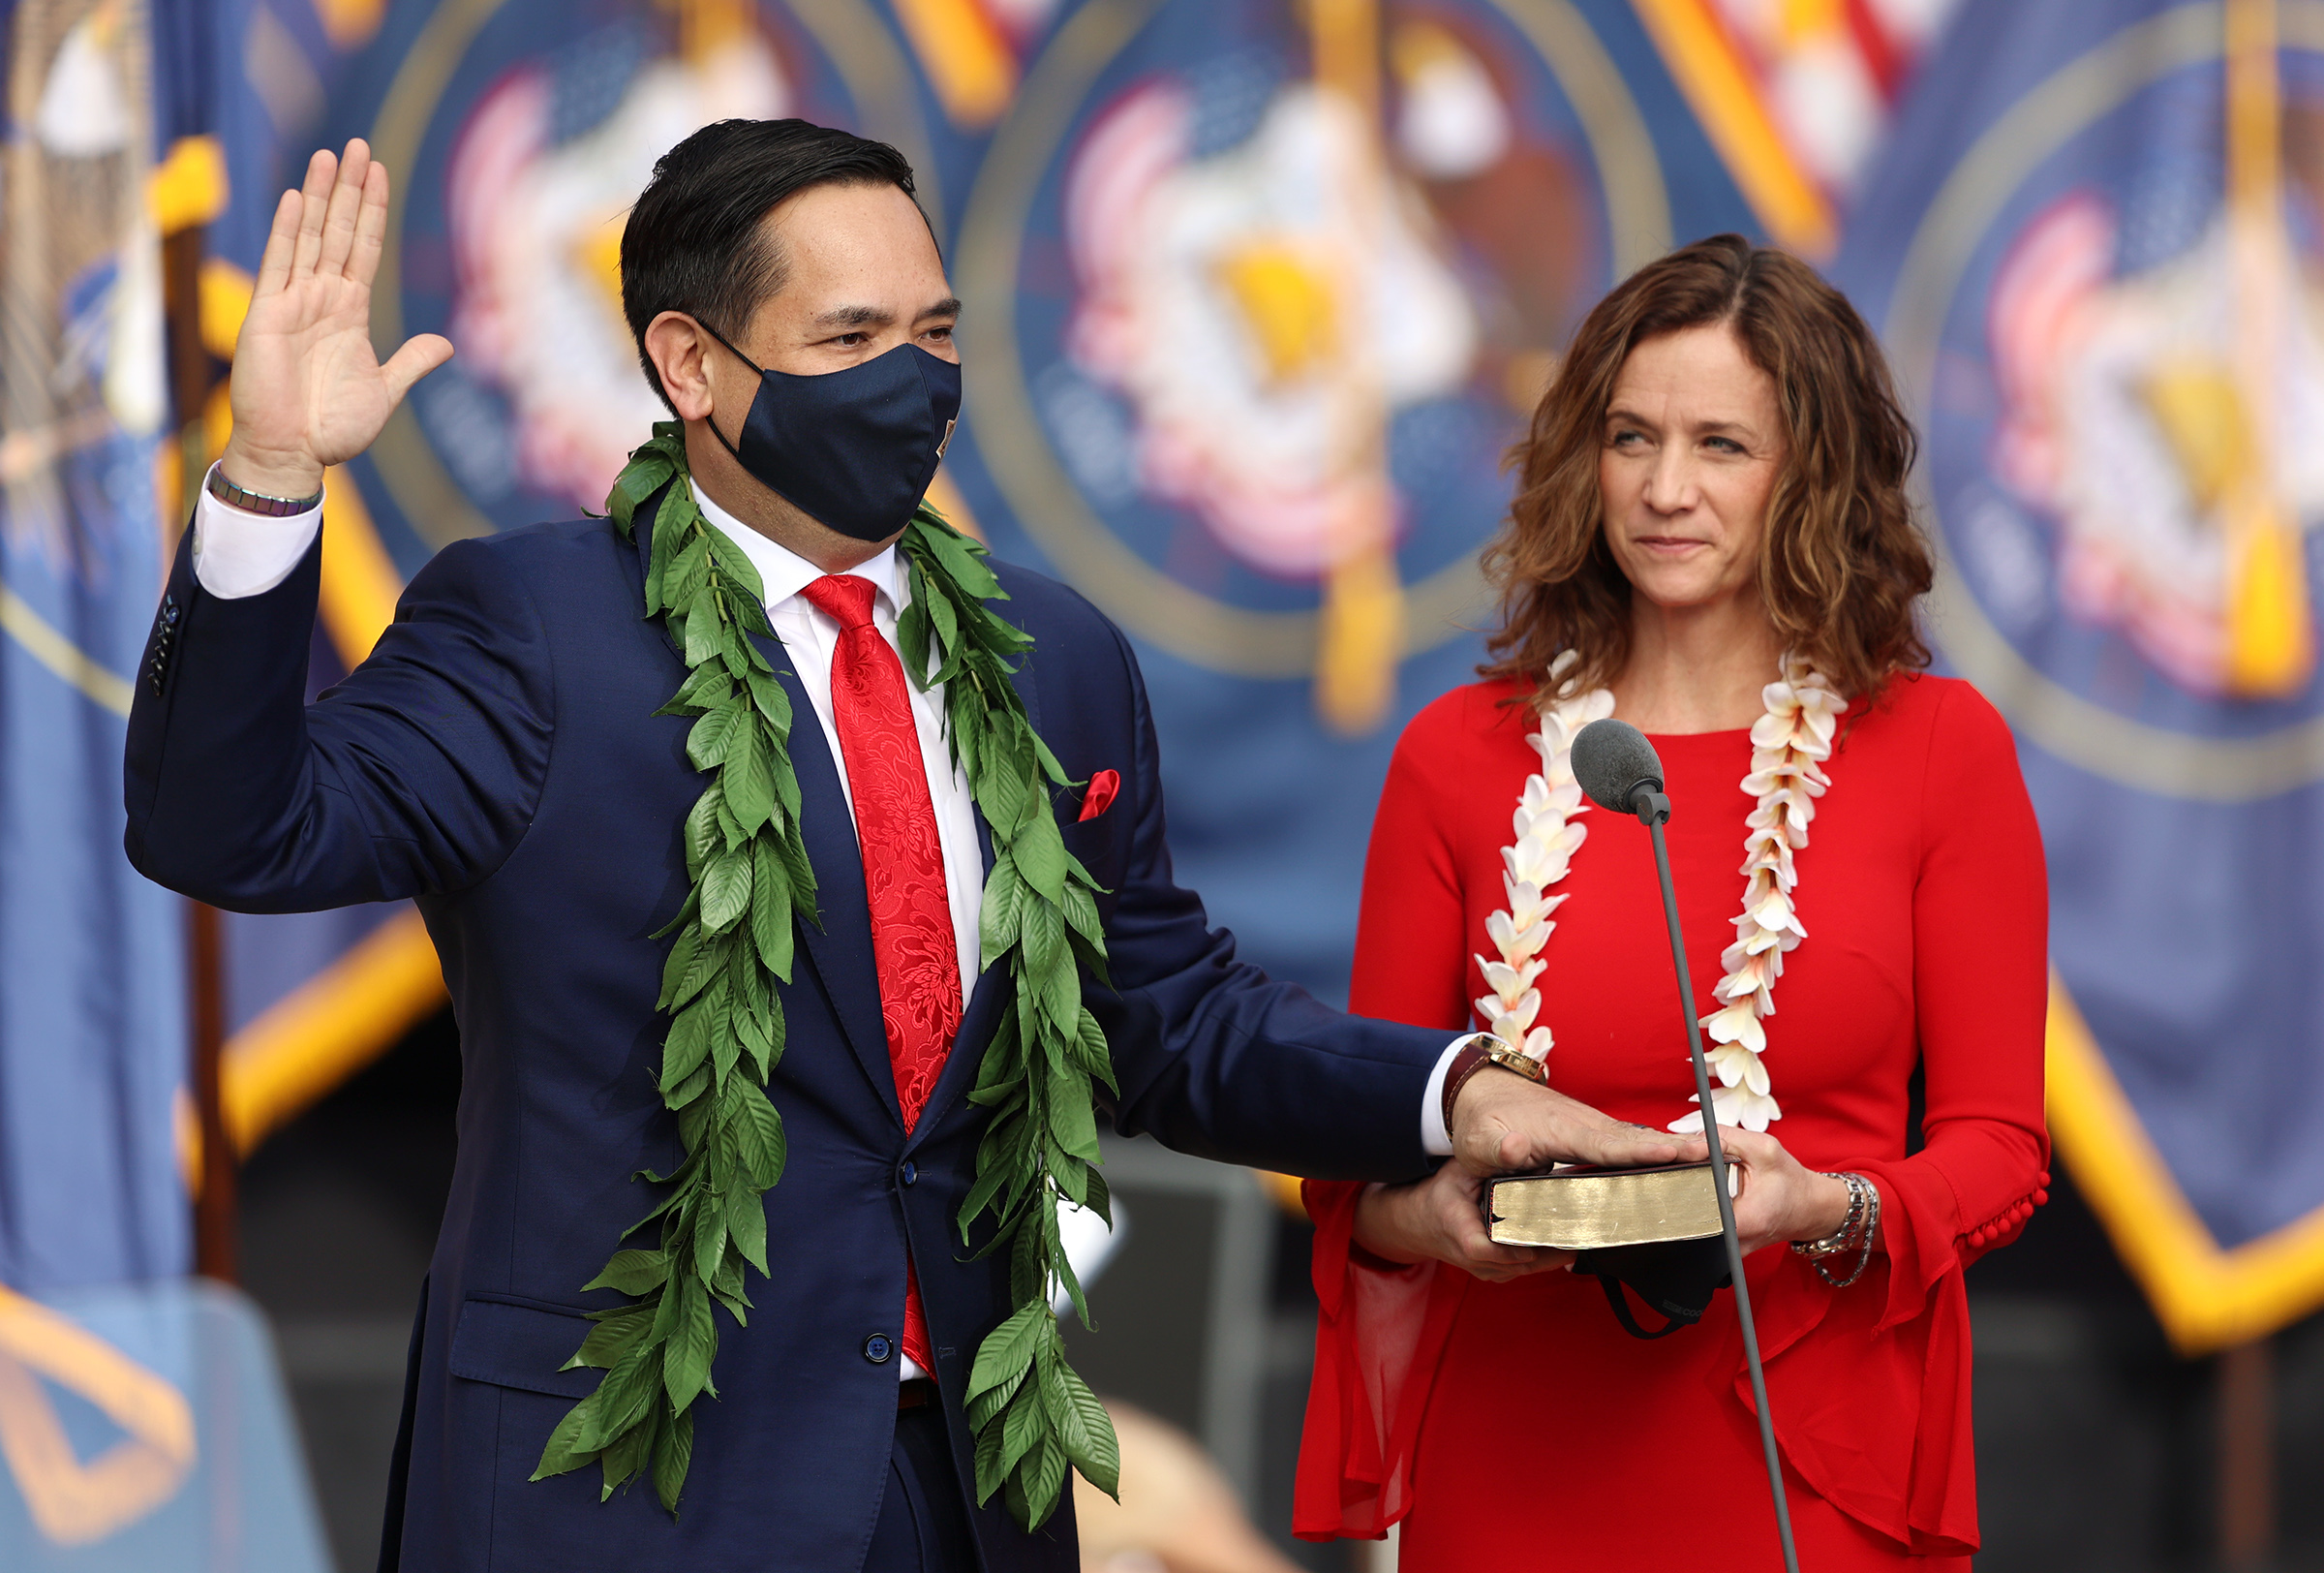 Utah Attorney General Sean Reyes takes his oath of office with his wife Saysha Reyes at his side at Tuacahn Center for the Arts in Ivins, Washington County, near St. George on Monday, Jan. 4, 2021.